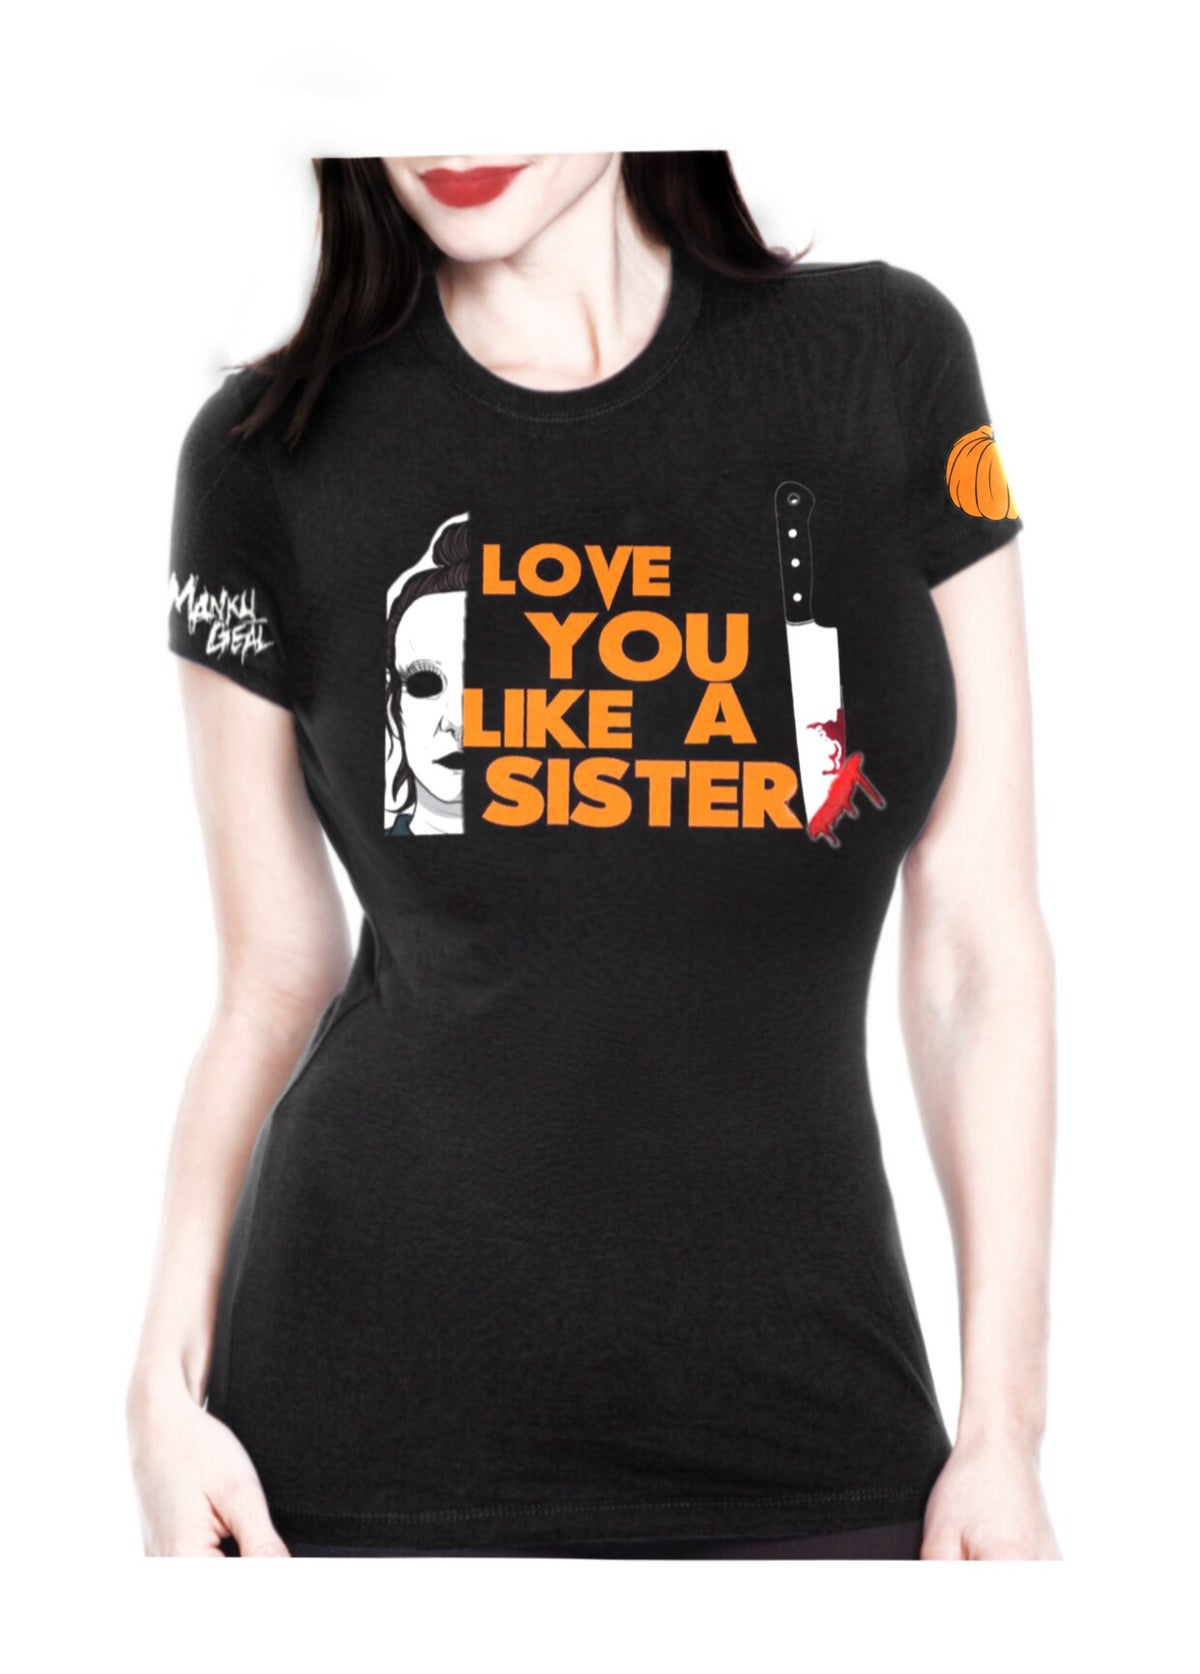 Image of Love You Like A Sister Women's Tee